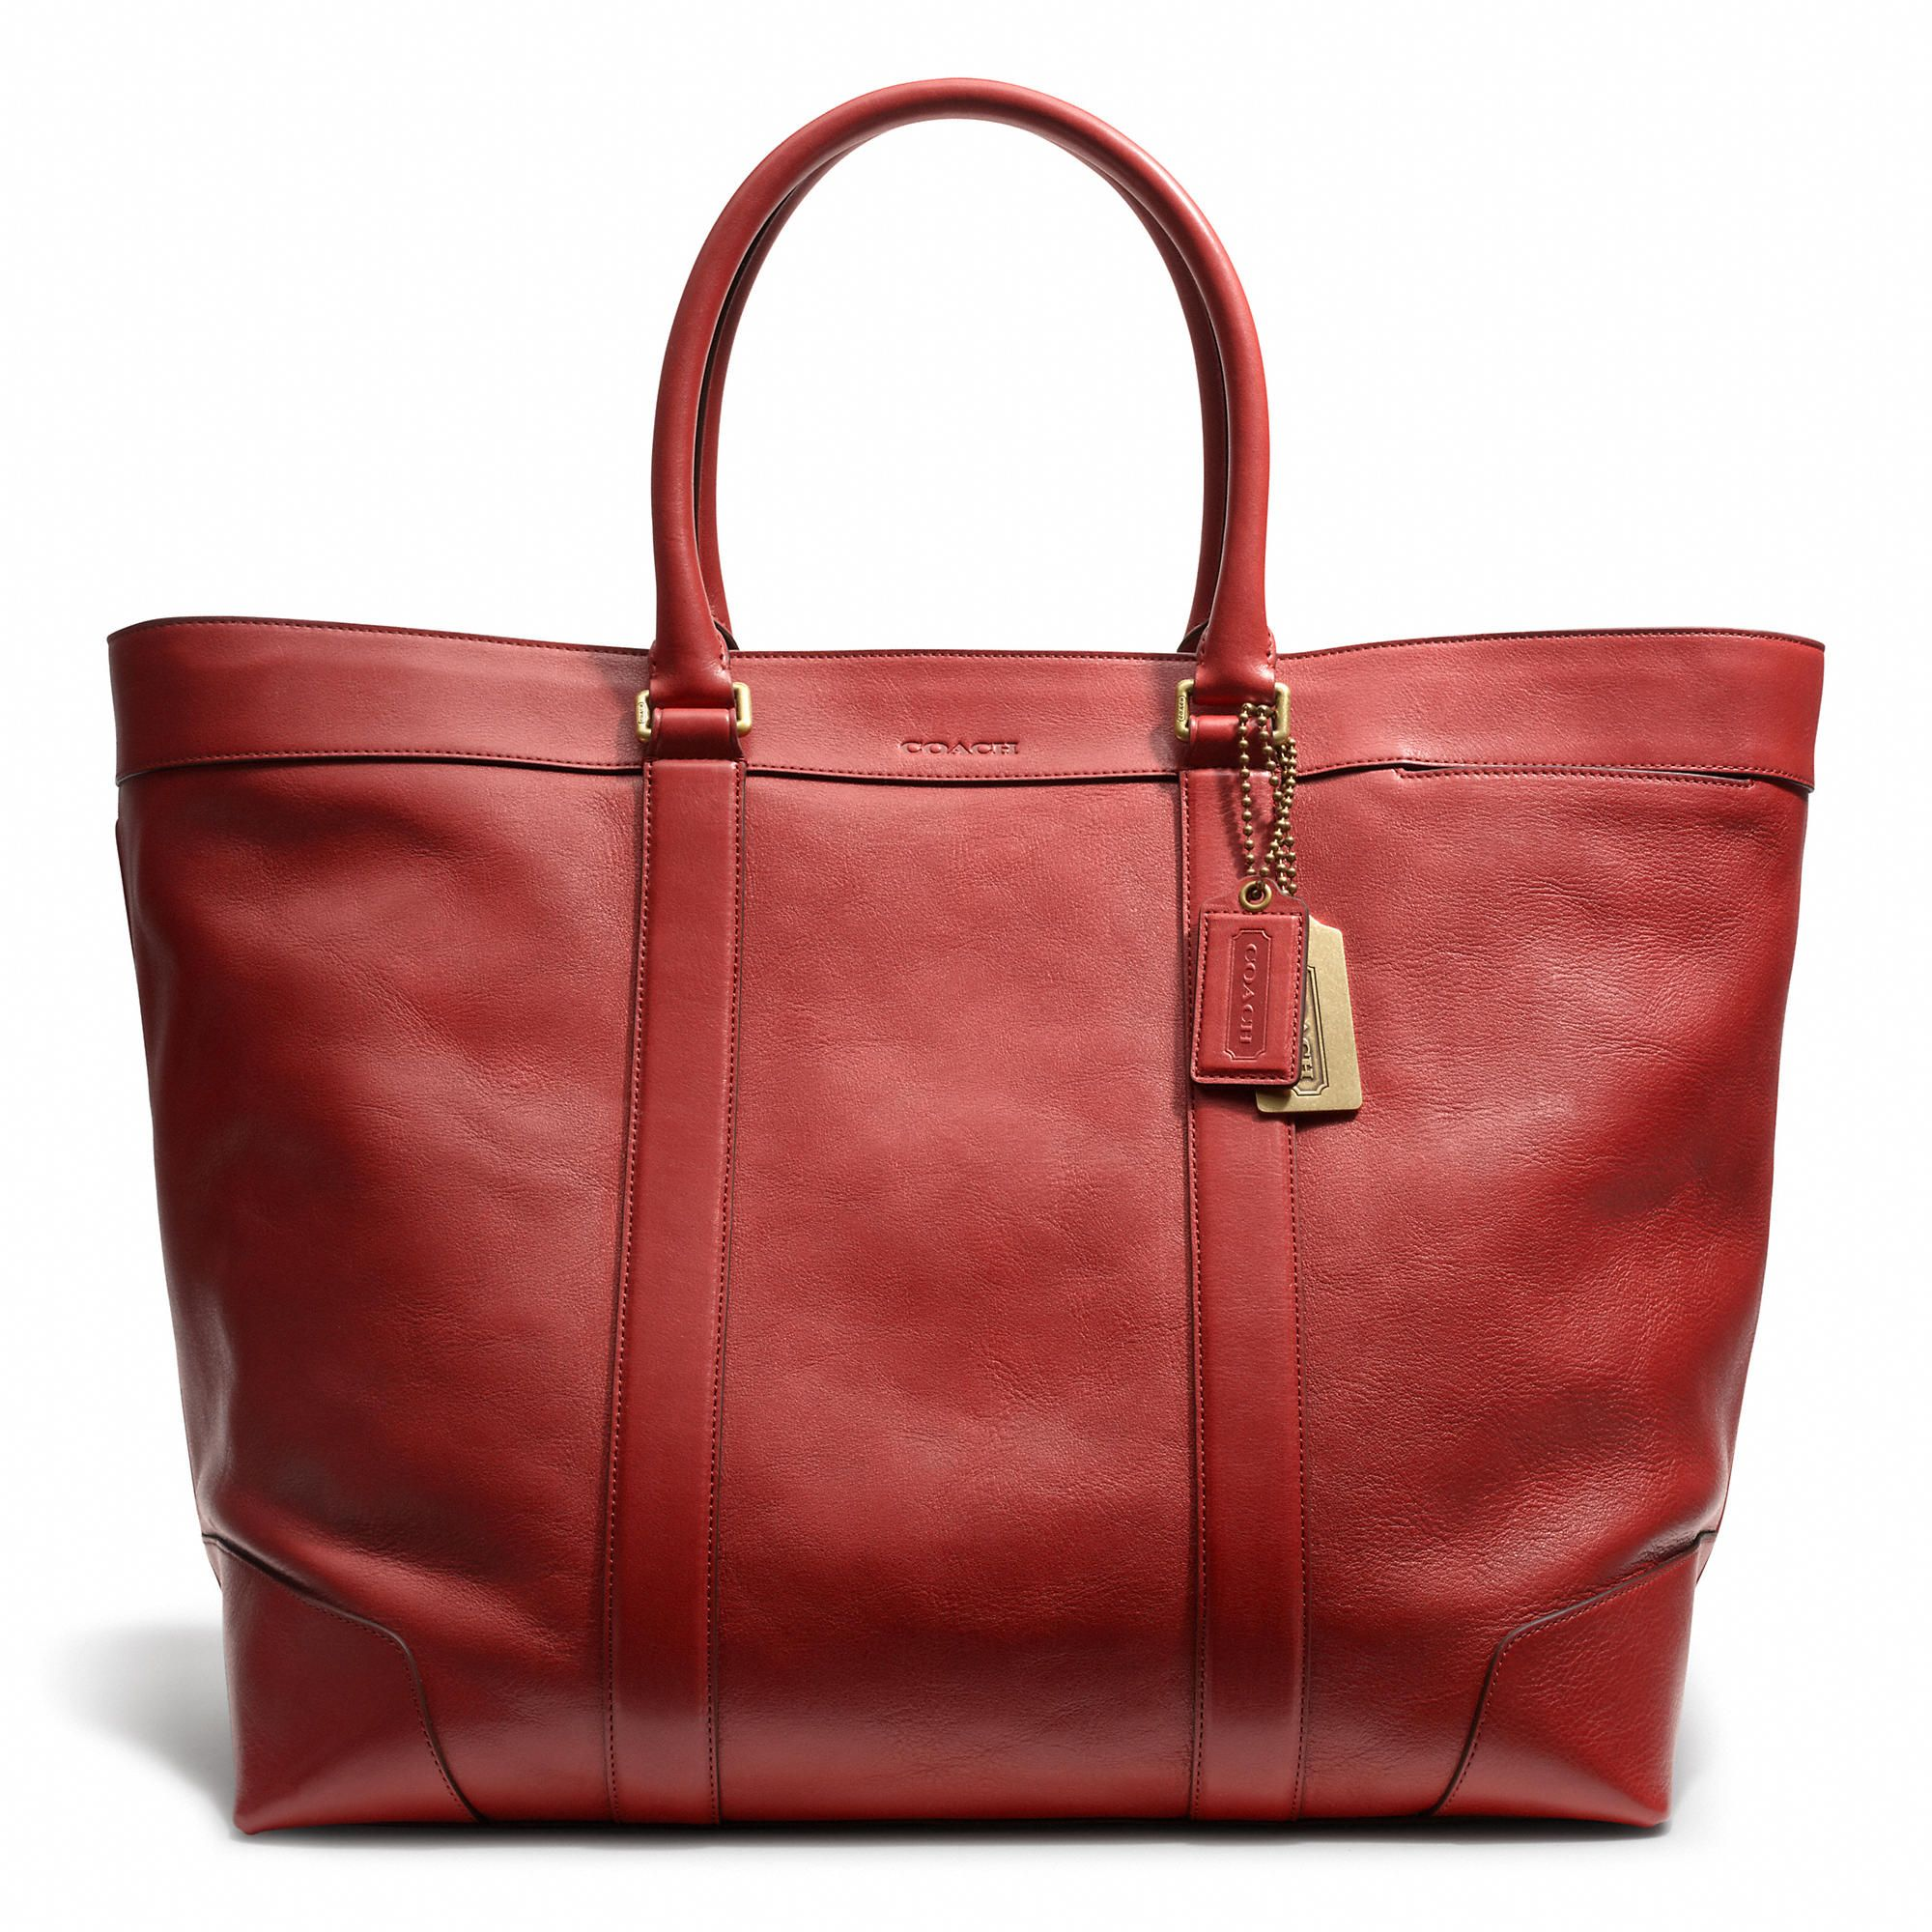 Coach :: BLEECKER LEGACY WEEKEND TOTE IN LEATHER